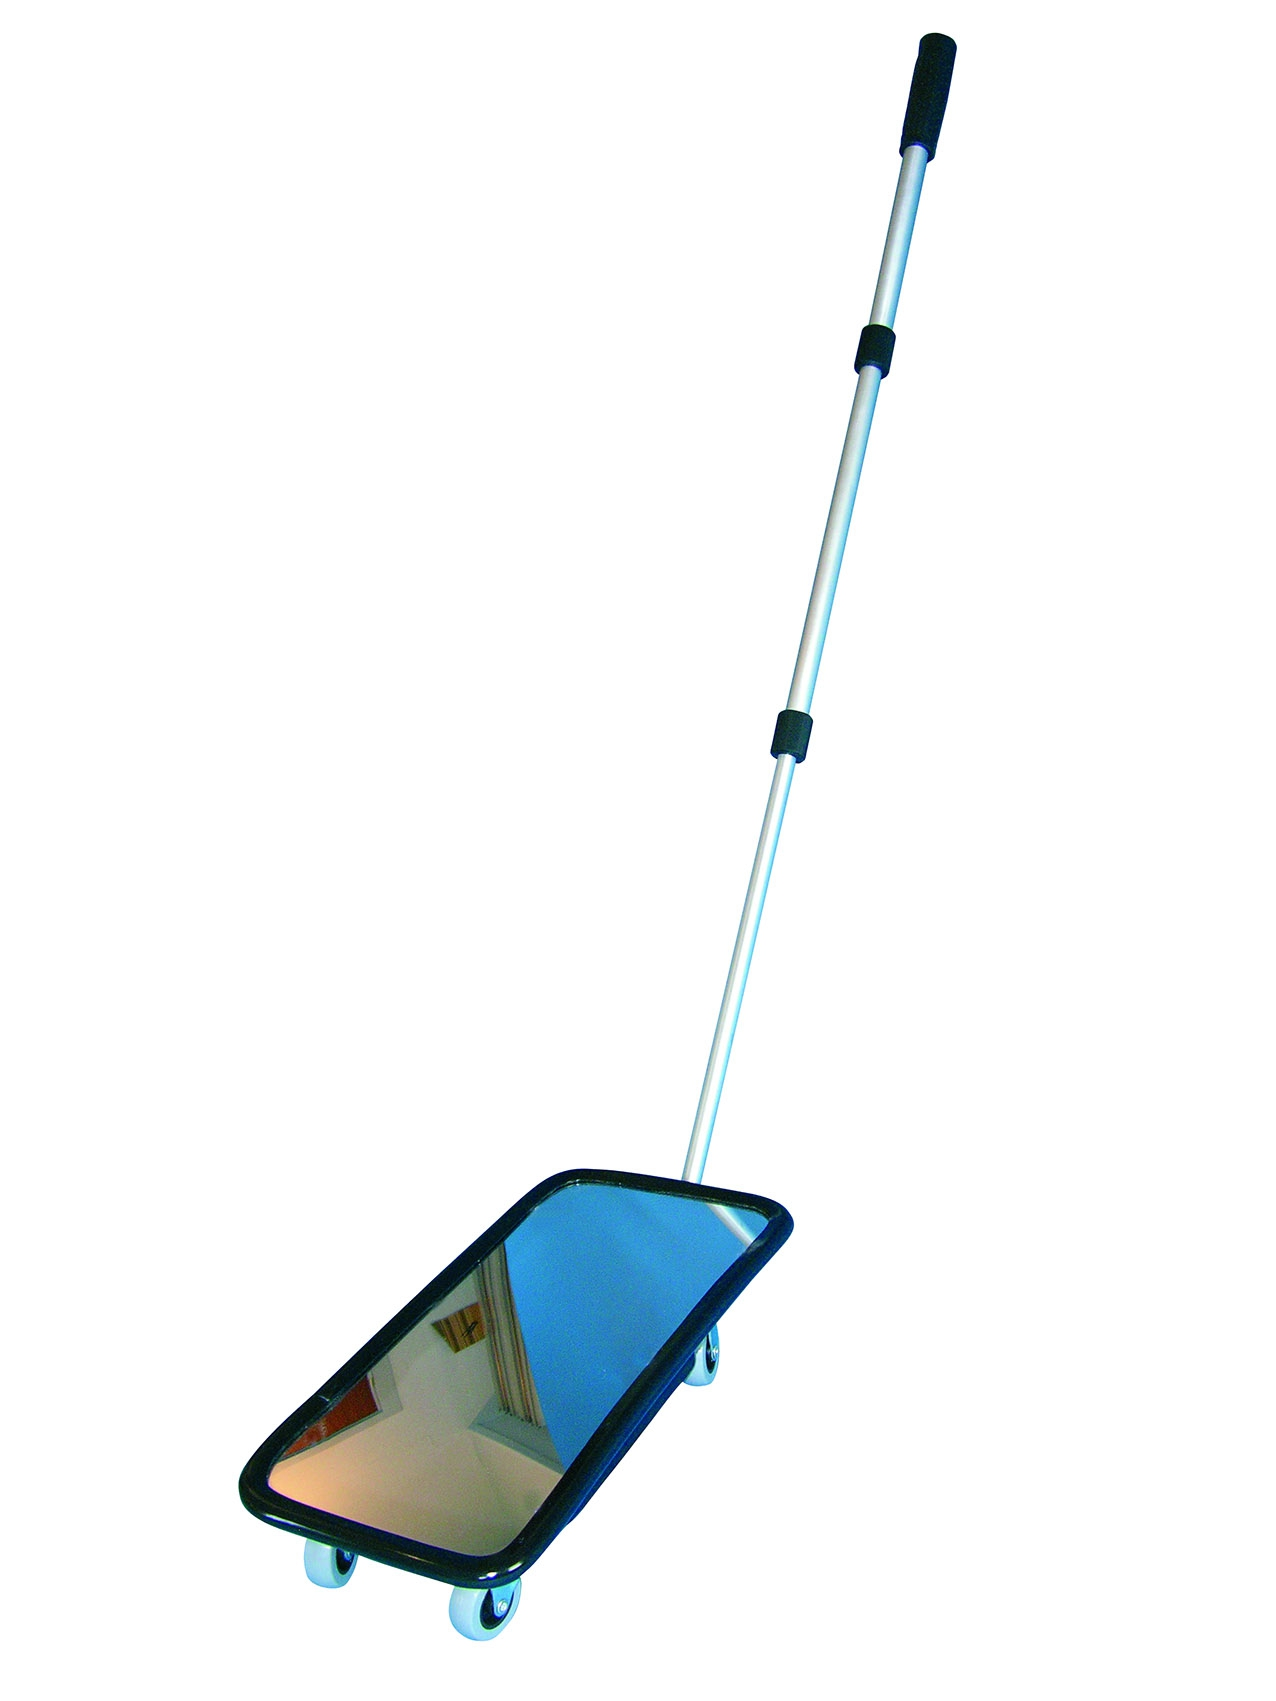 Inspection mirror 20 × 40 cm, with wheels